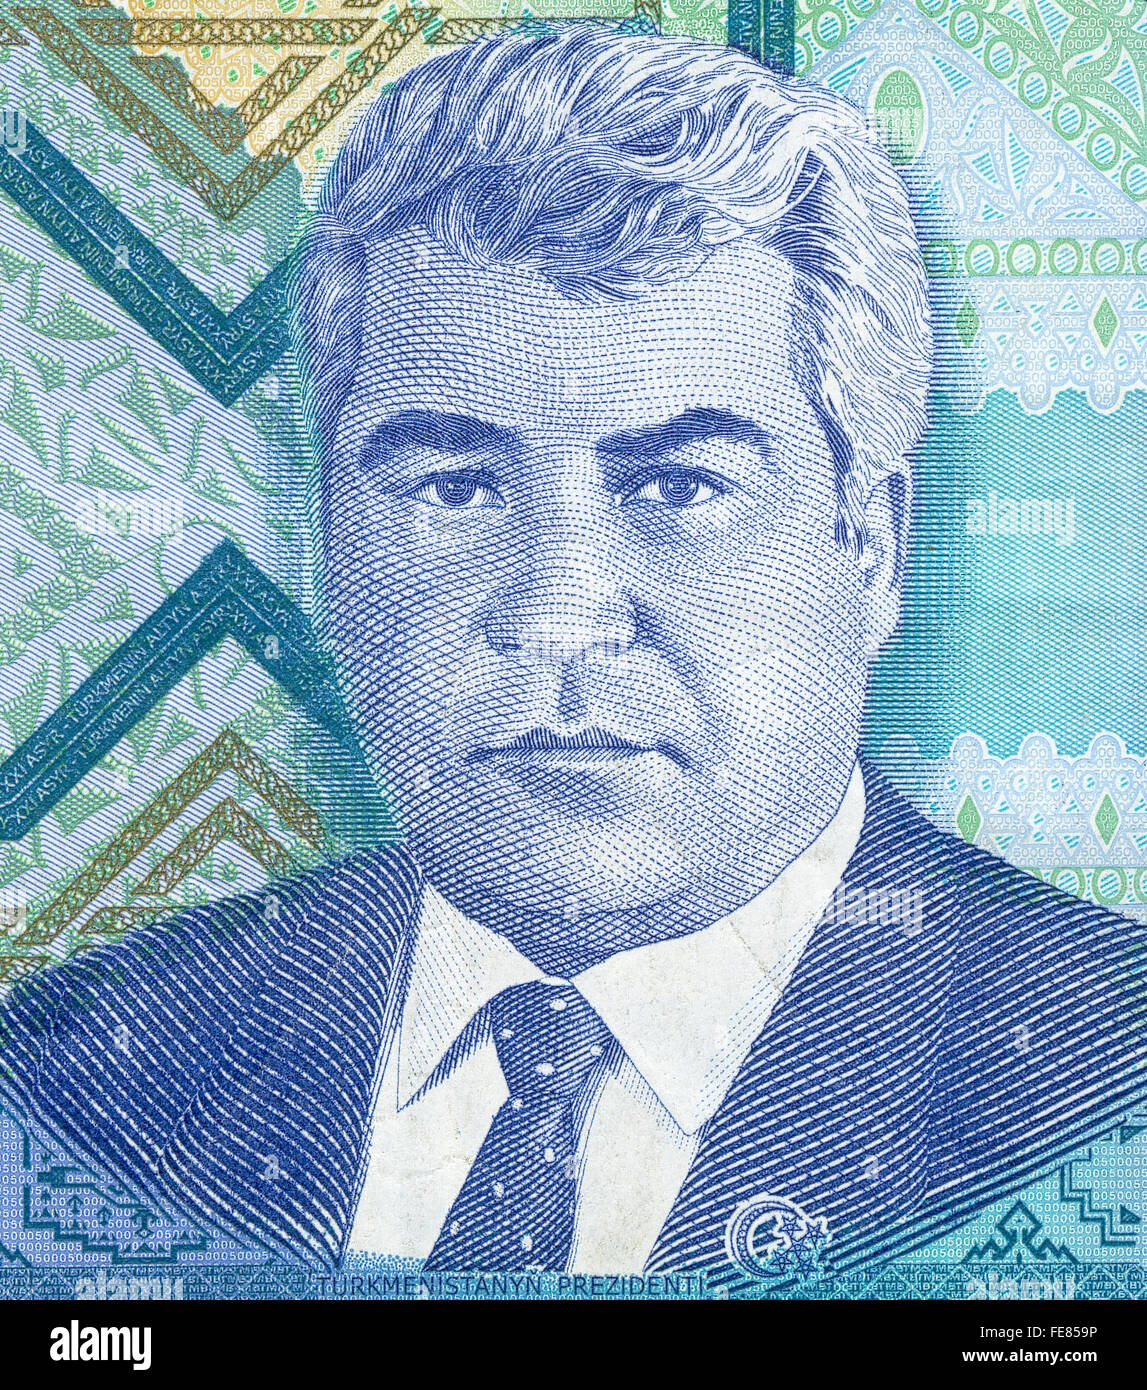 Portrait of the first President of Turkmenistan Saparmurat Niyazov from 5000 manat banknote Stock Photo